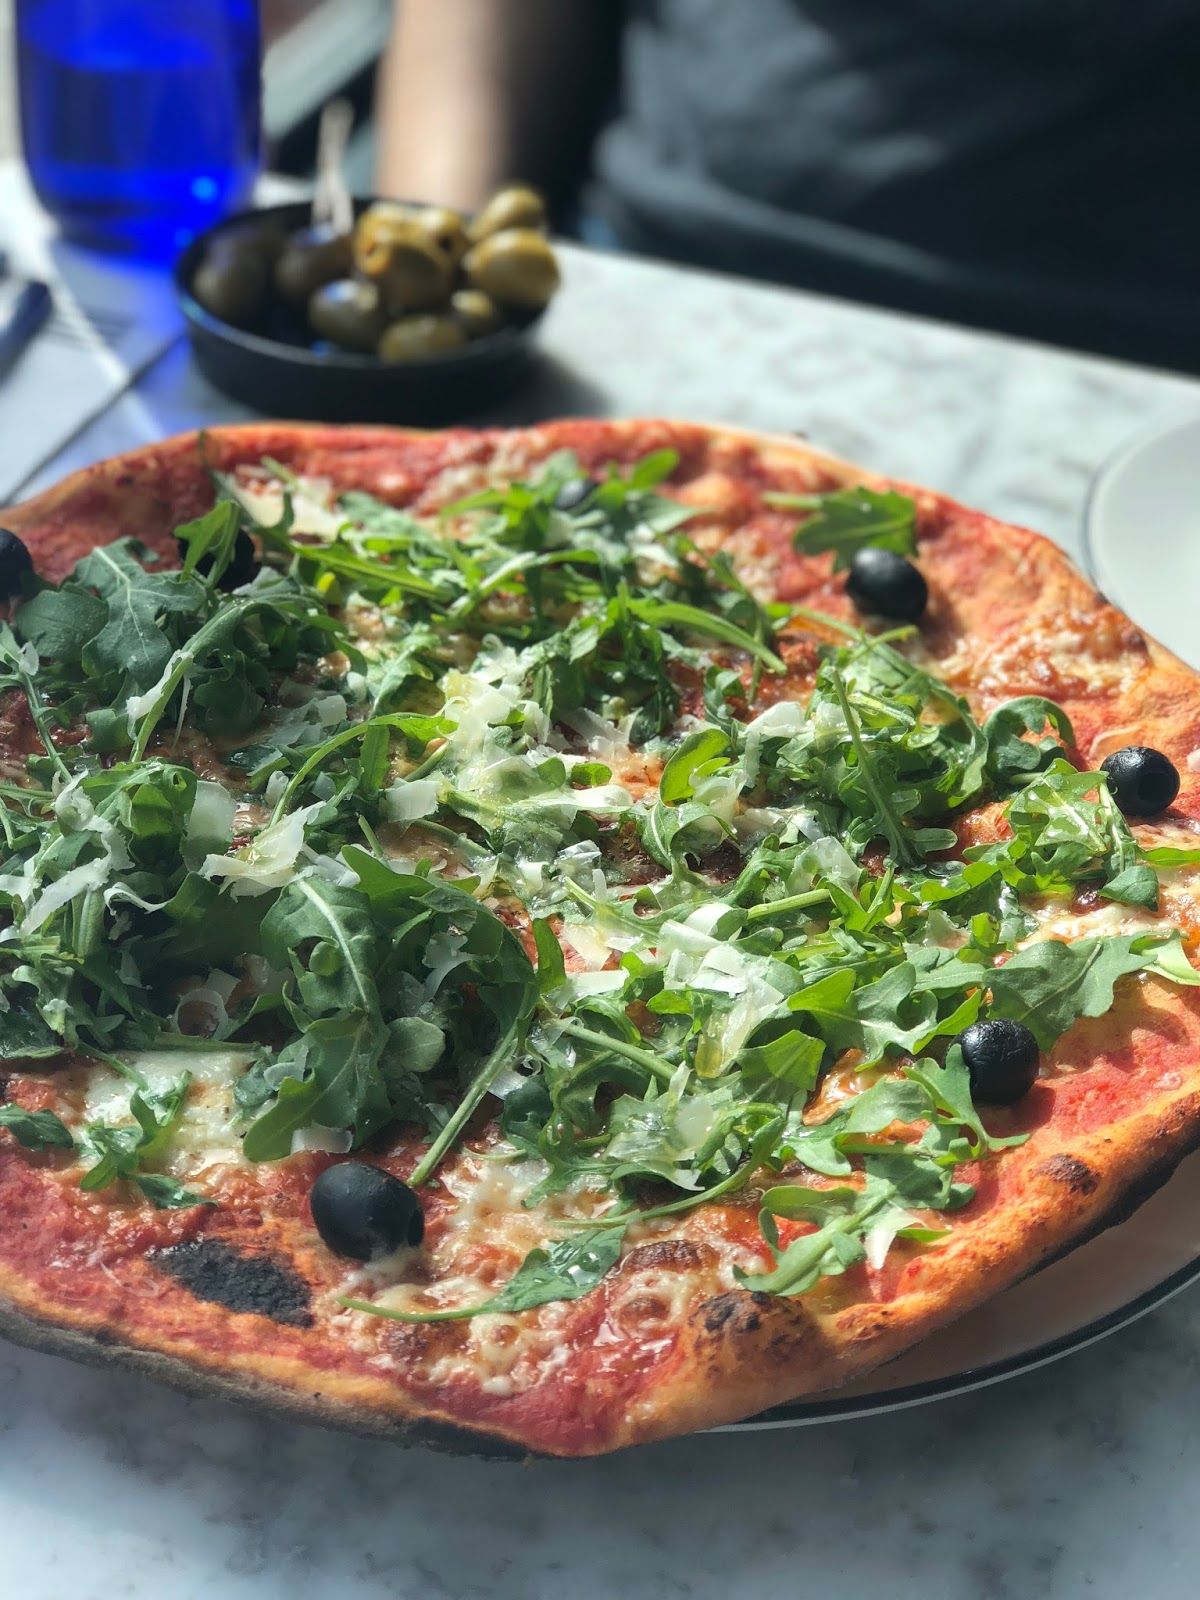 Where to eat in dubin, places to dine in dublin, pizza in dublin, Italian restaurant dublin